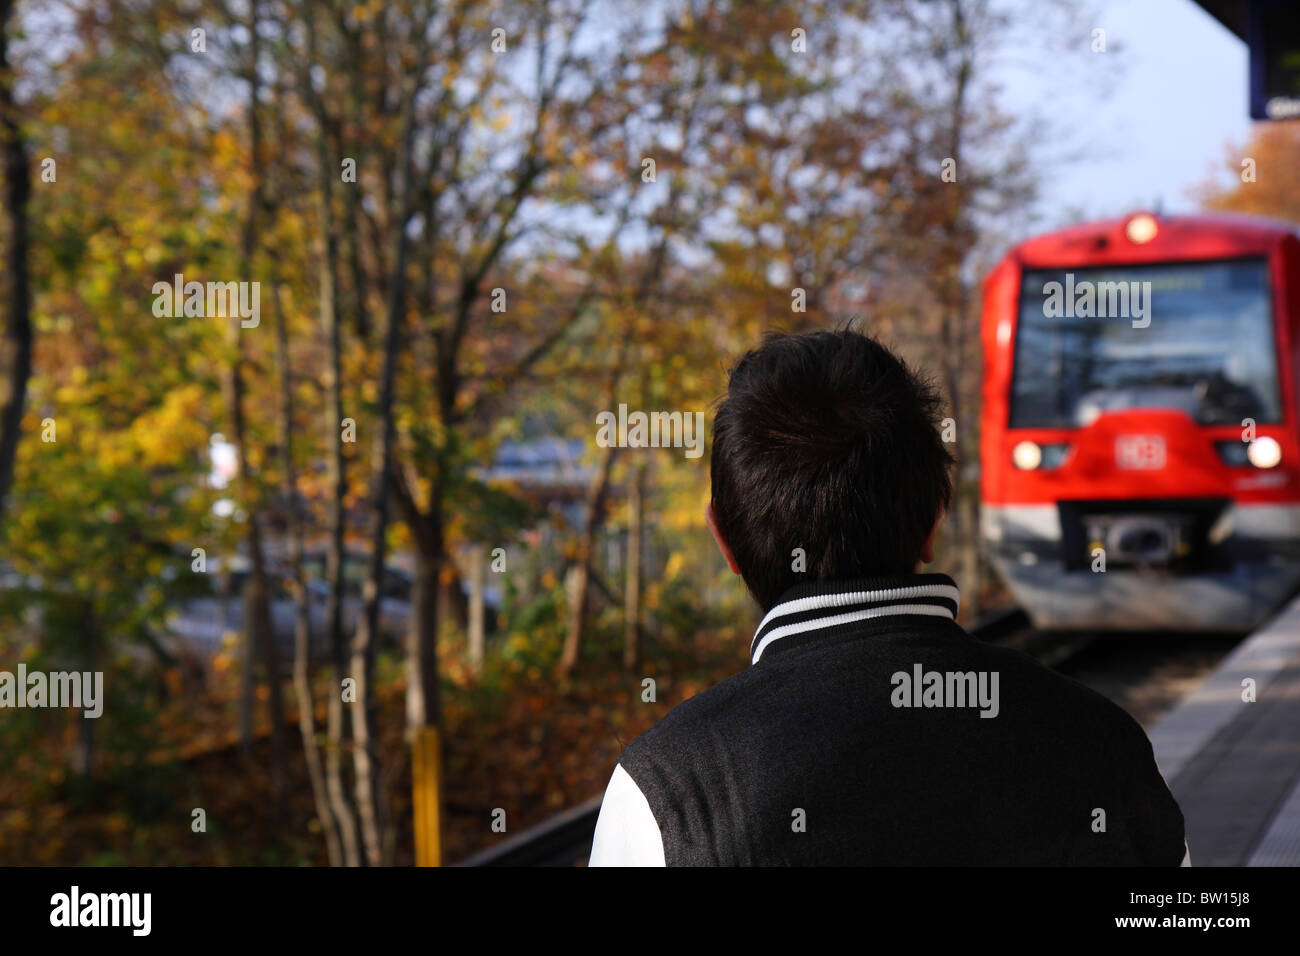 Young man waiting for a Deutsch Bahn train, which can be seen approaching, at Neuwiedenthal near Hamburg - Stock Image